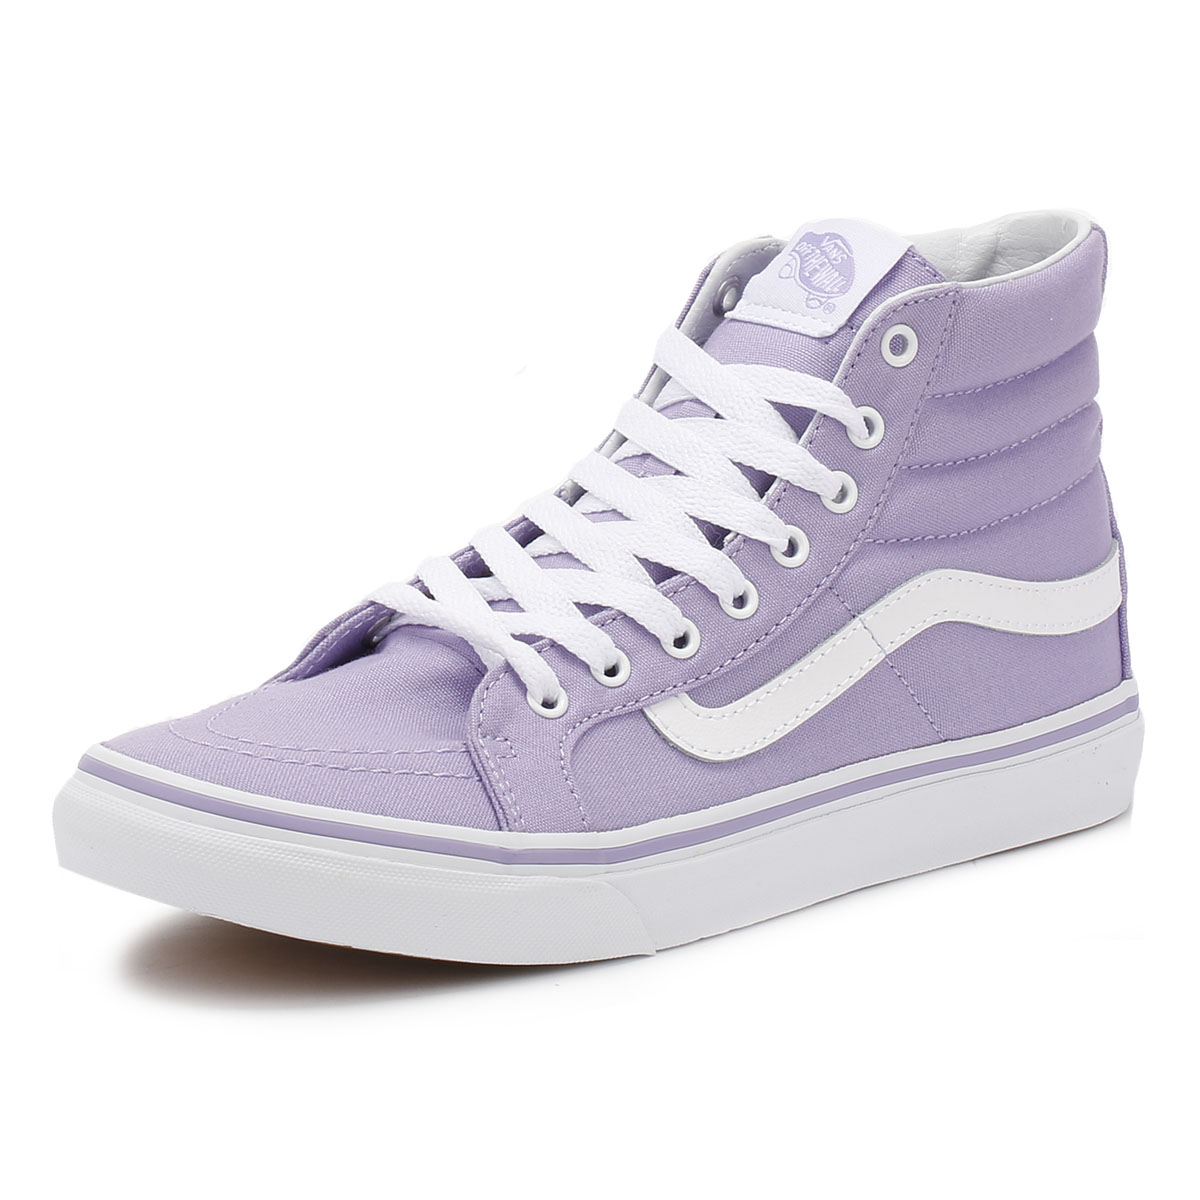 Ladies Vans Shoes Size